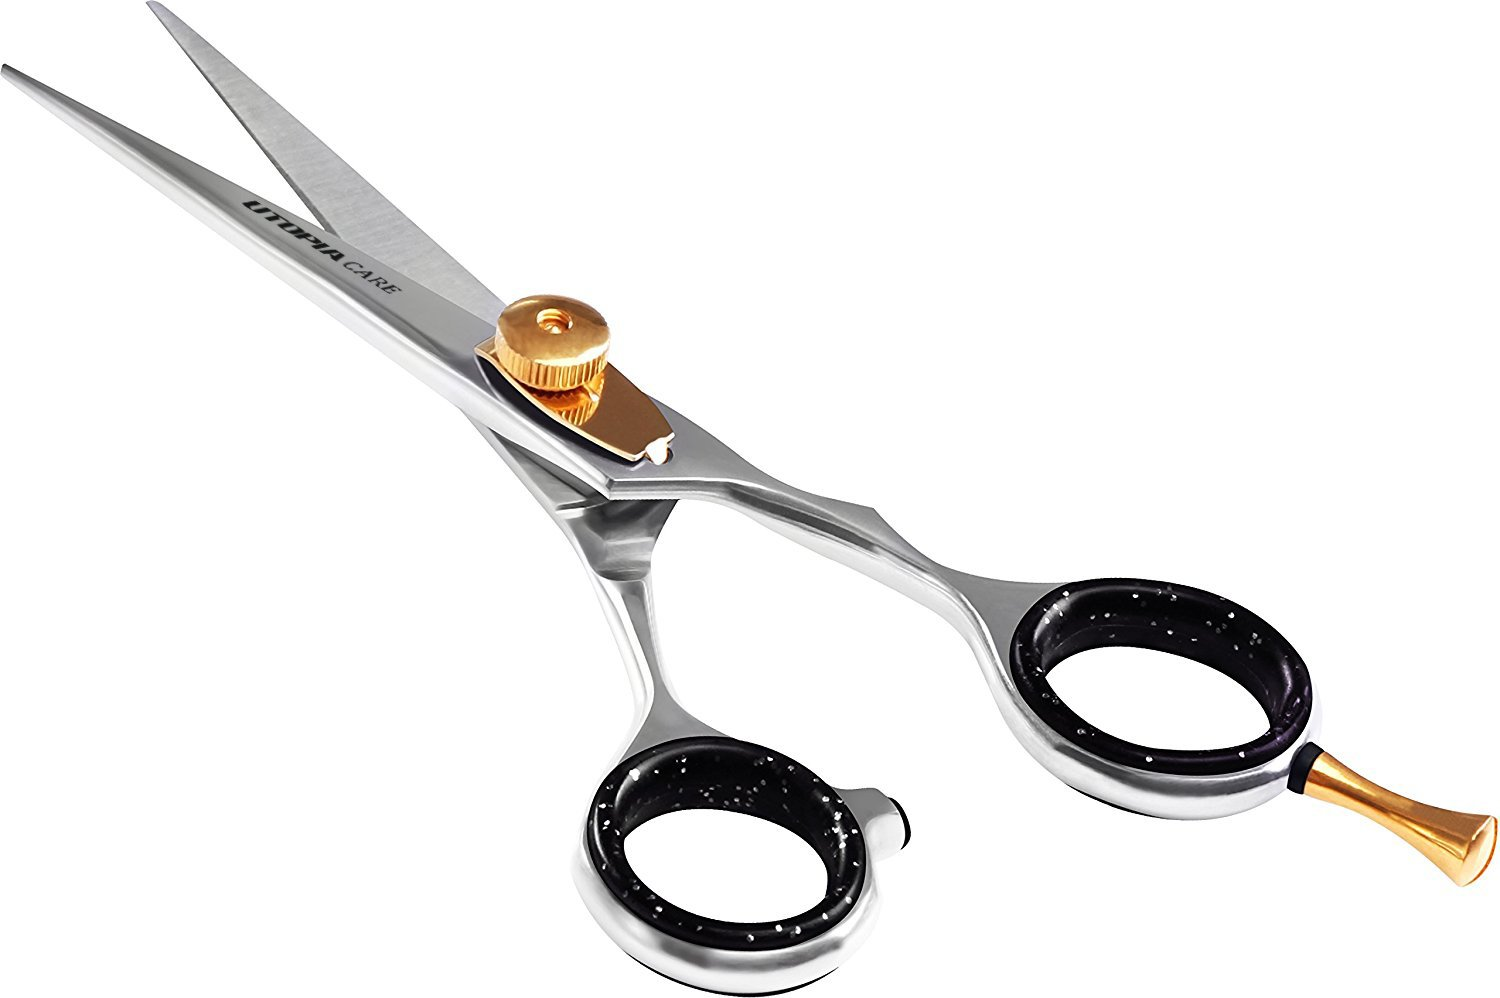 Professional Barber/Salon Razor Edge Hair Cutting Scissors/Shears (6 ½ Inch, Forged) with Fine Adjustable Tension Screw - Detachable Finger Rest - Japanese Stainless Steel - by Utopia Care by Utopia Care (Image #4)